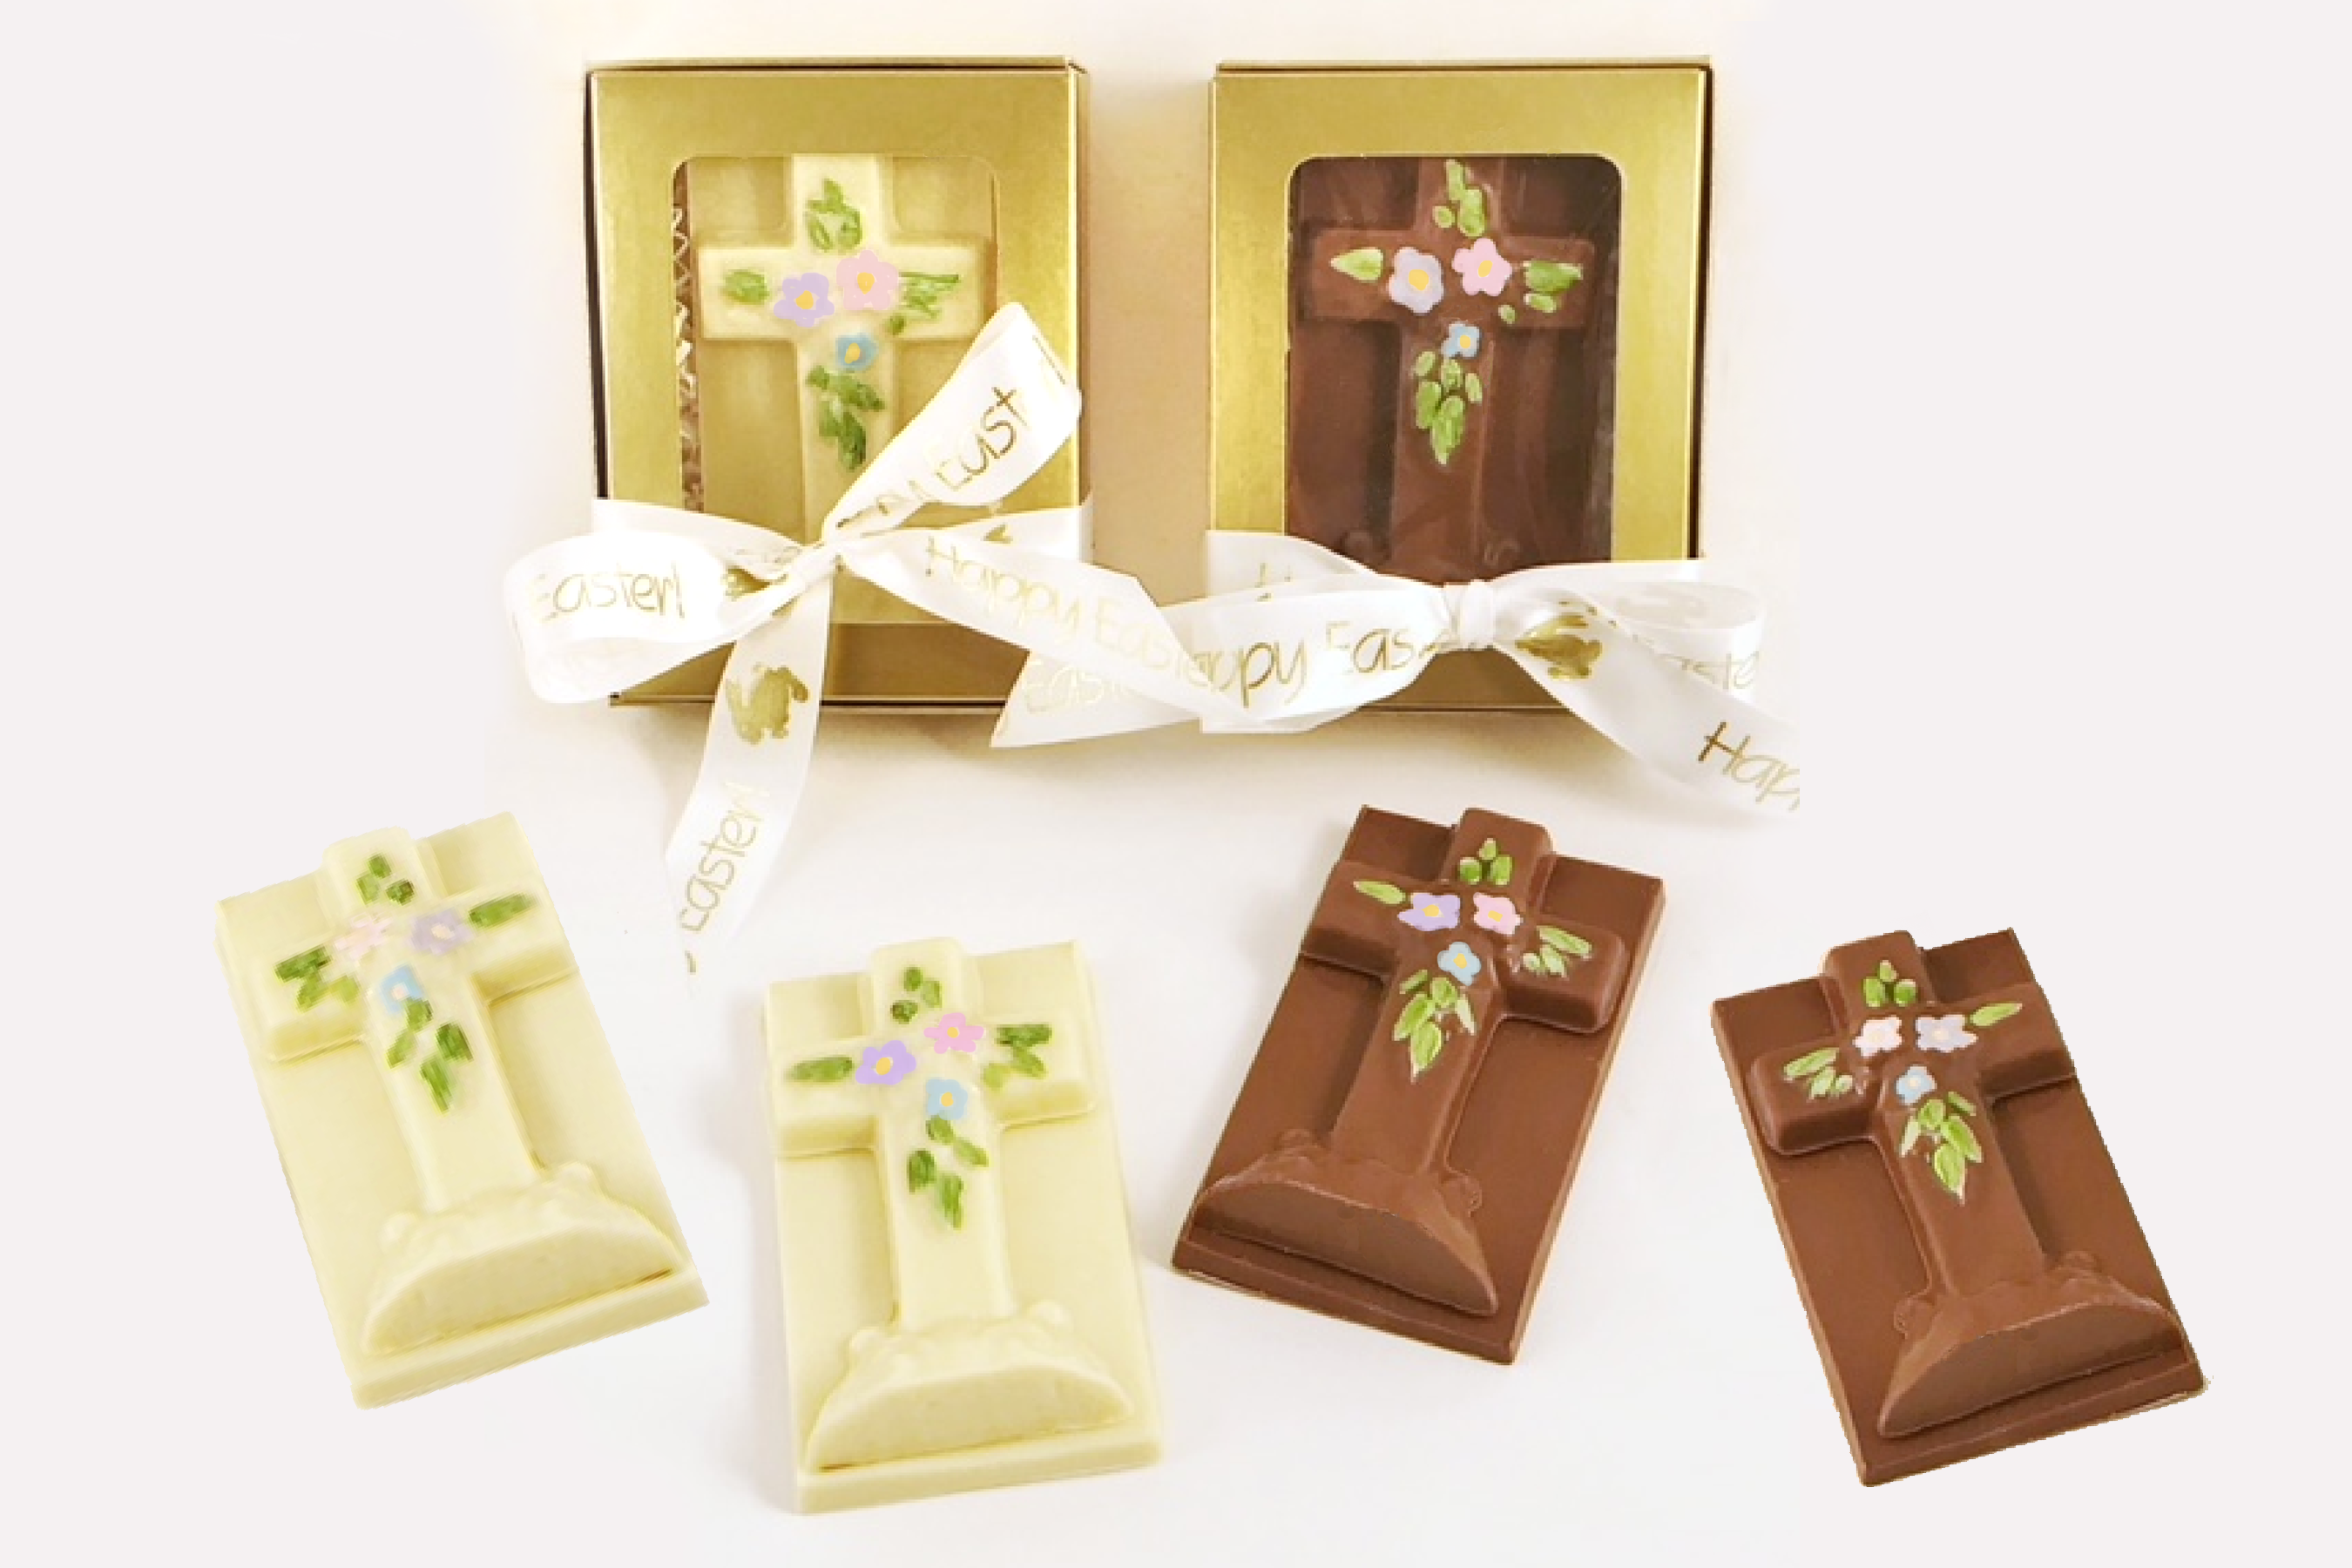 Chocolate Text - <b>Easter Crosses</b> - SOLID Milk and White Crosses, set of 2 pcs each